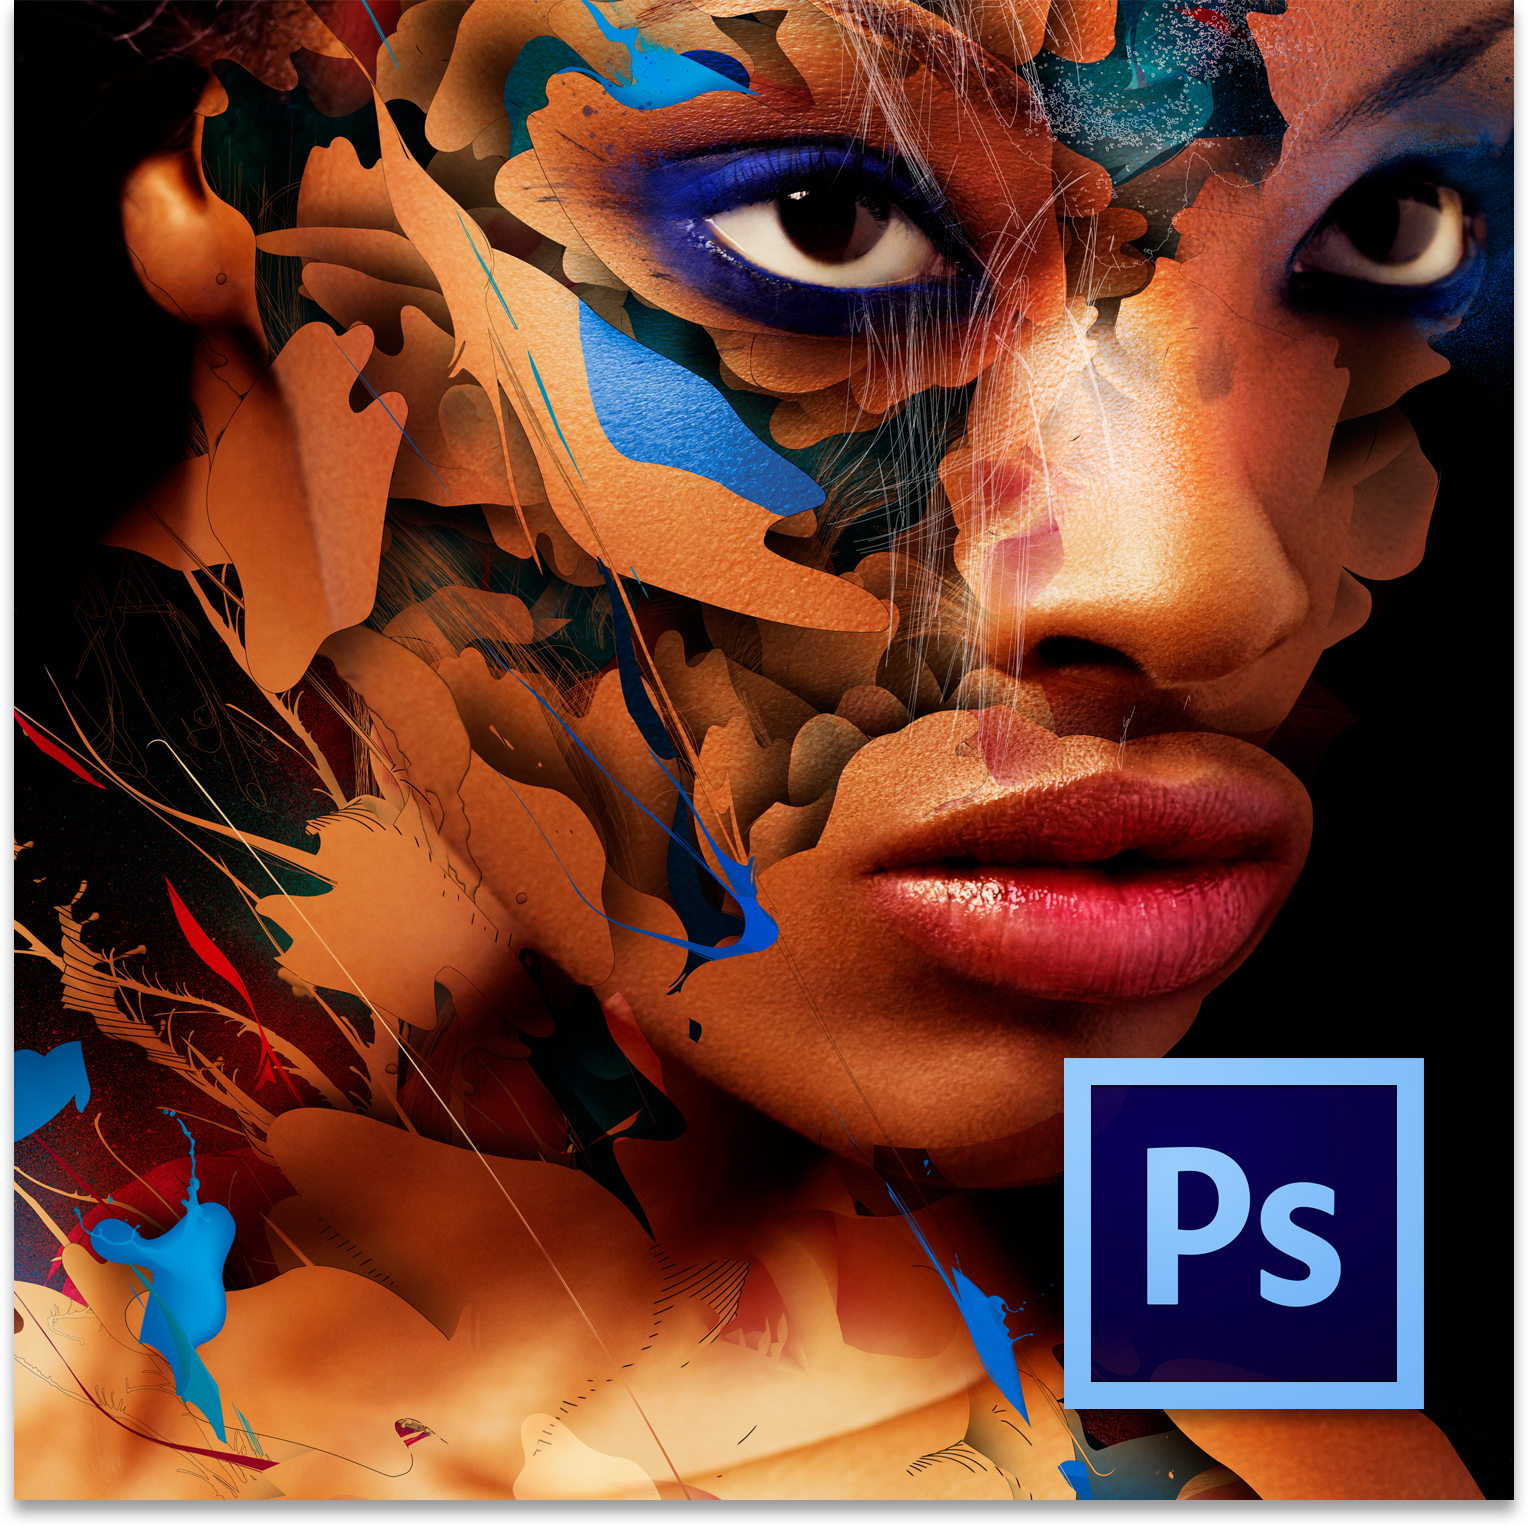 ADOBE Photoshop CS6 Extended for Windows.